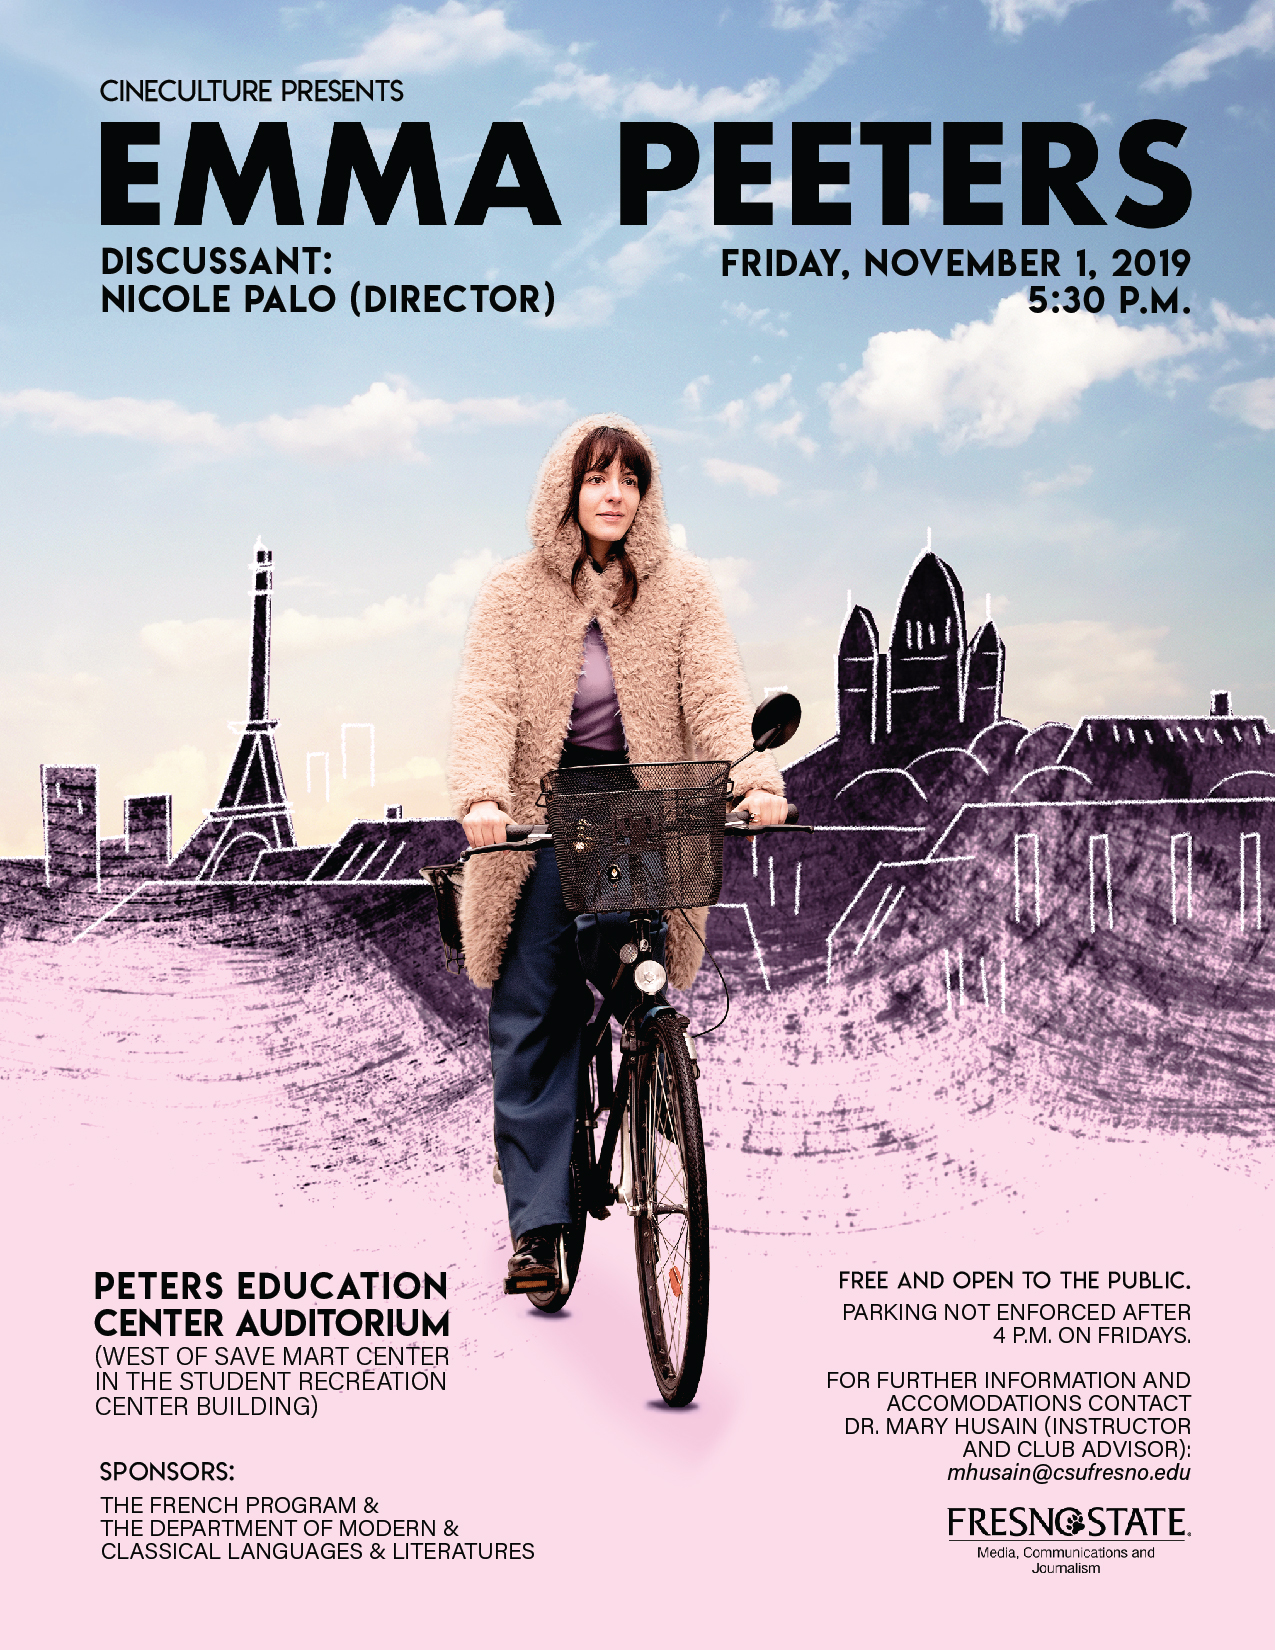 emma peeters cineculture SCREEN